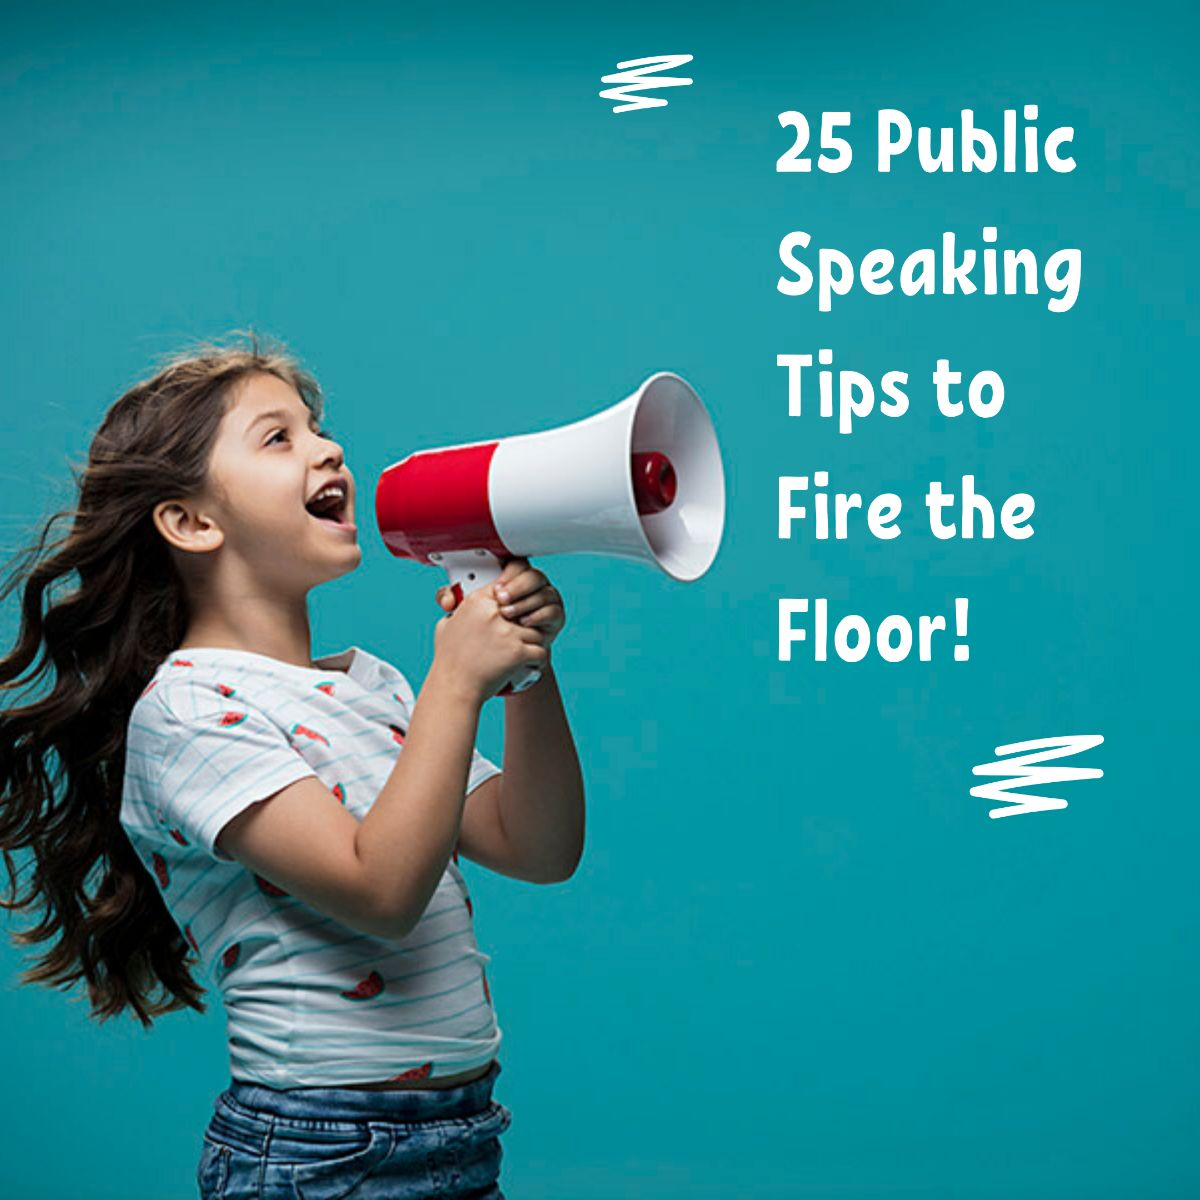 25 public speaking tips to fire the floor